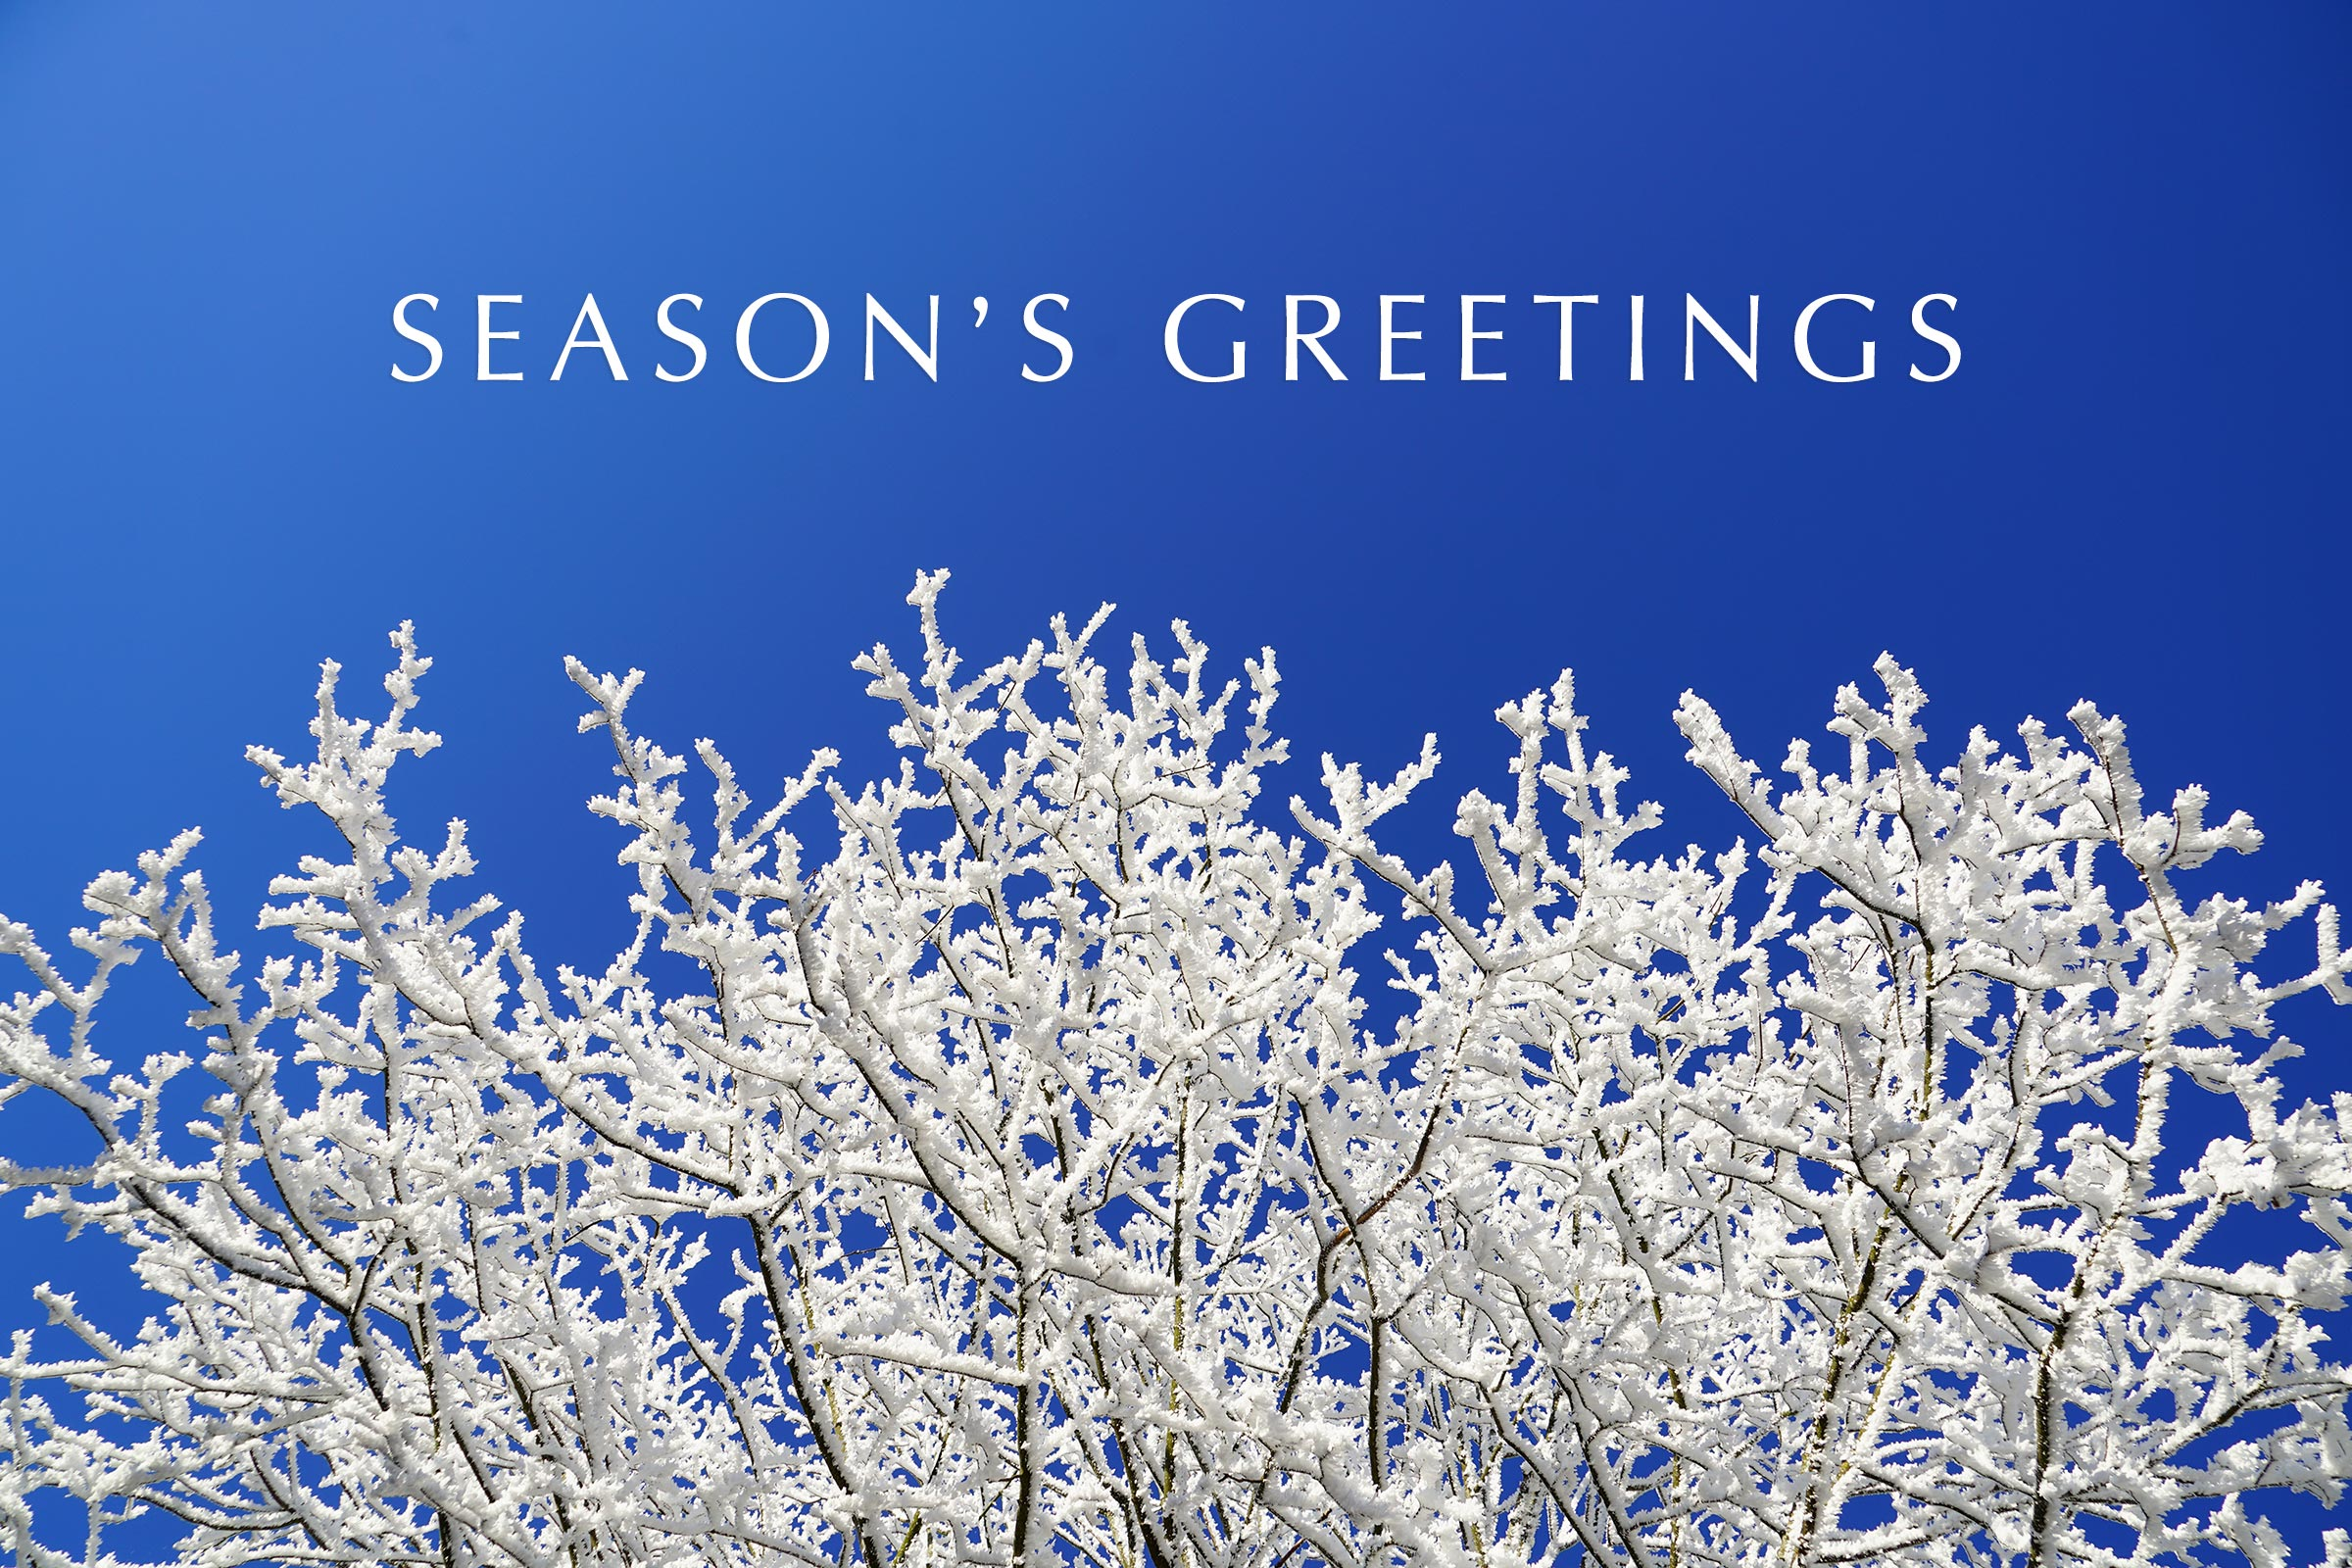 15 Seasons Greetings Cards Stock Images HD Wallpapers Winter 2400x1600